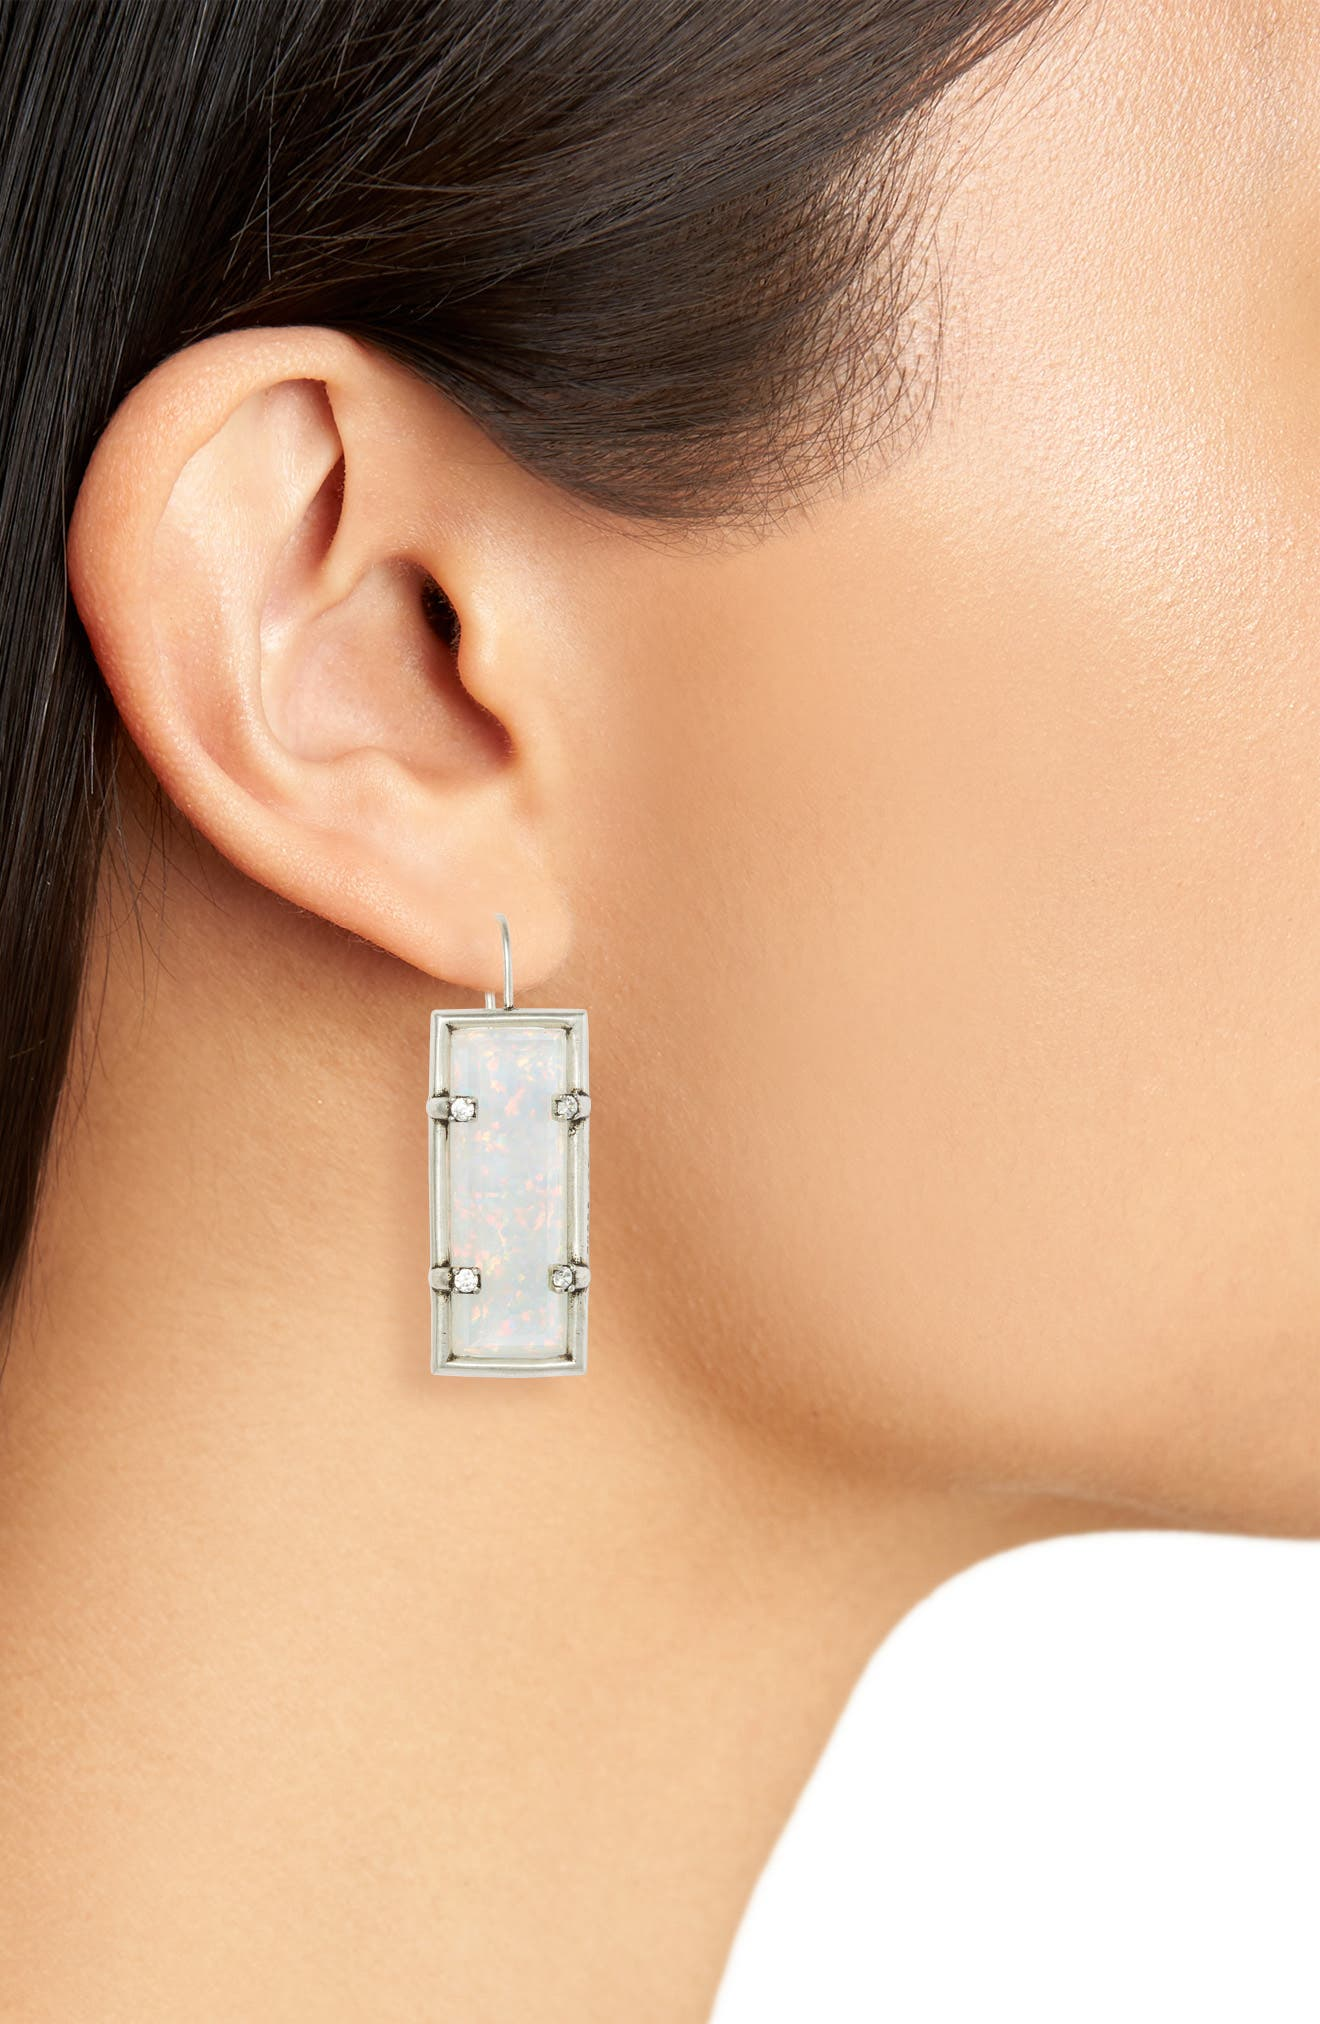 Knox Opal Drop Earrings,                             Alternate thumbnail 2, color,                             040